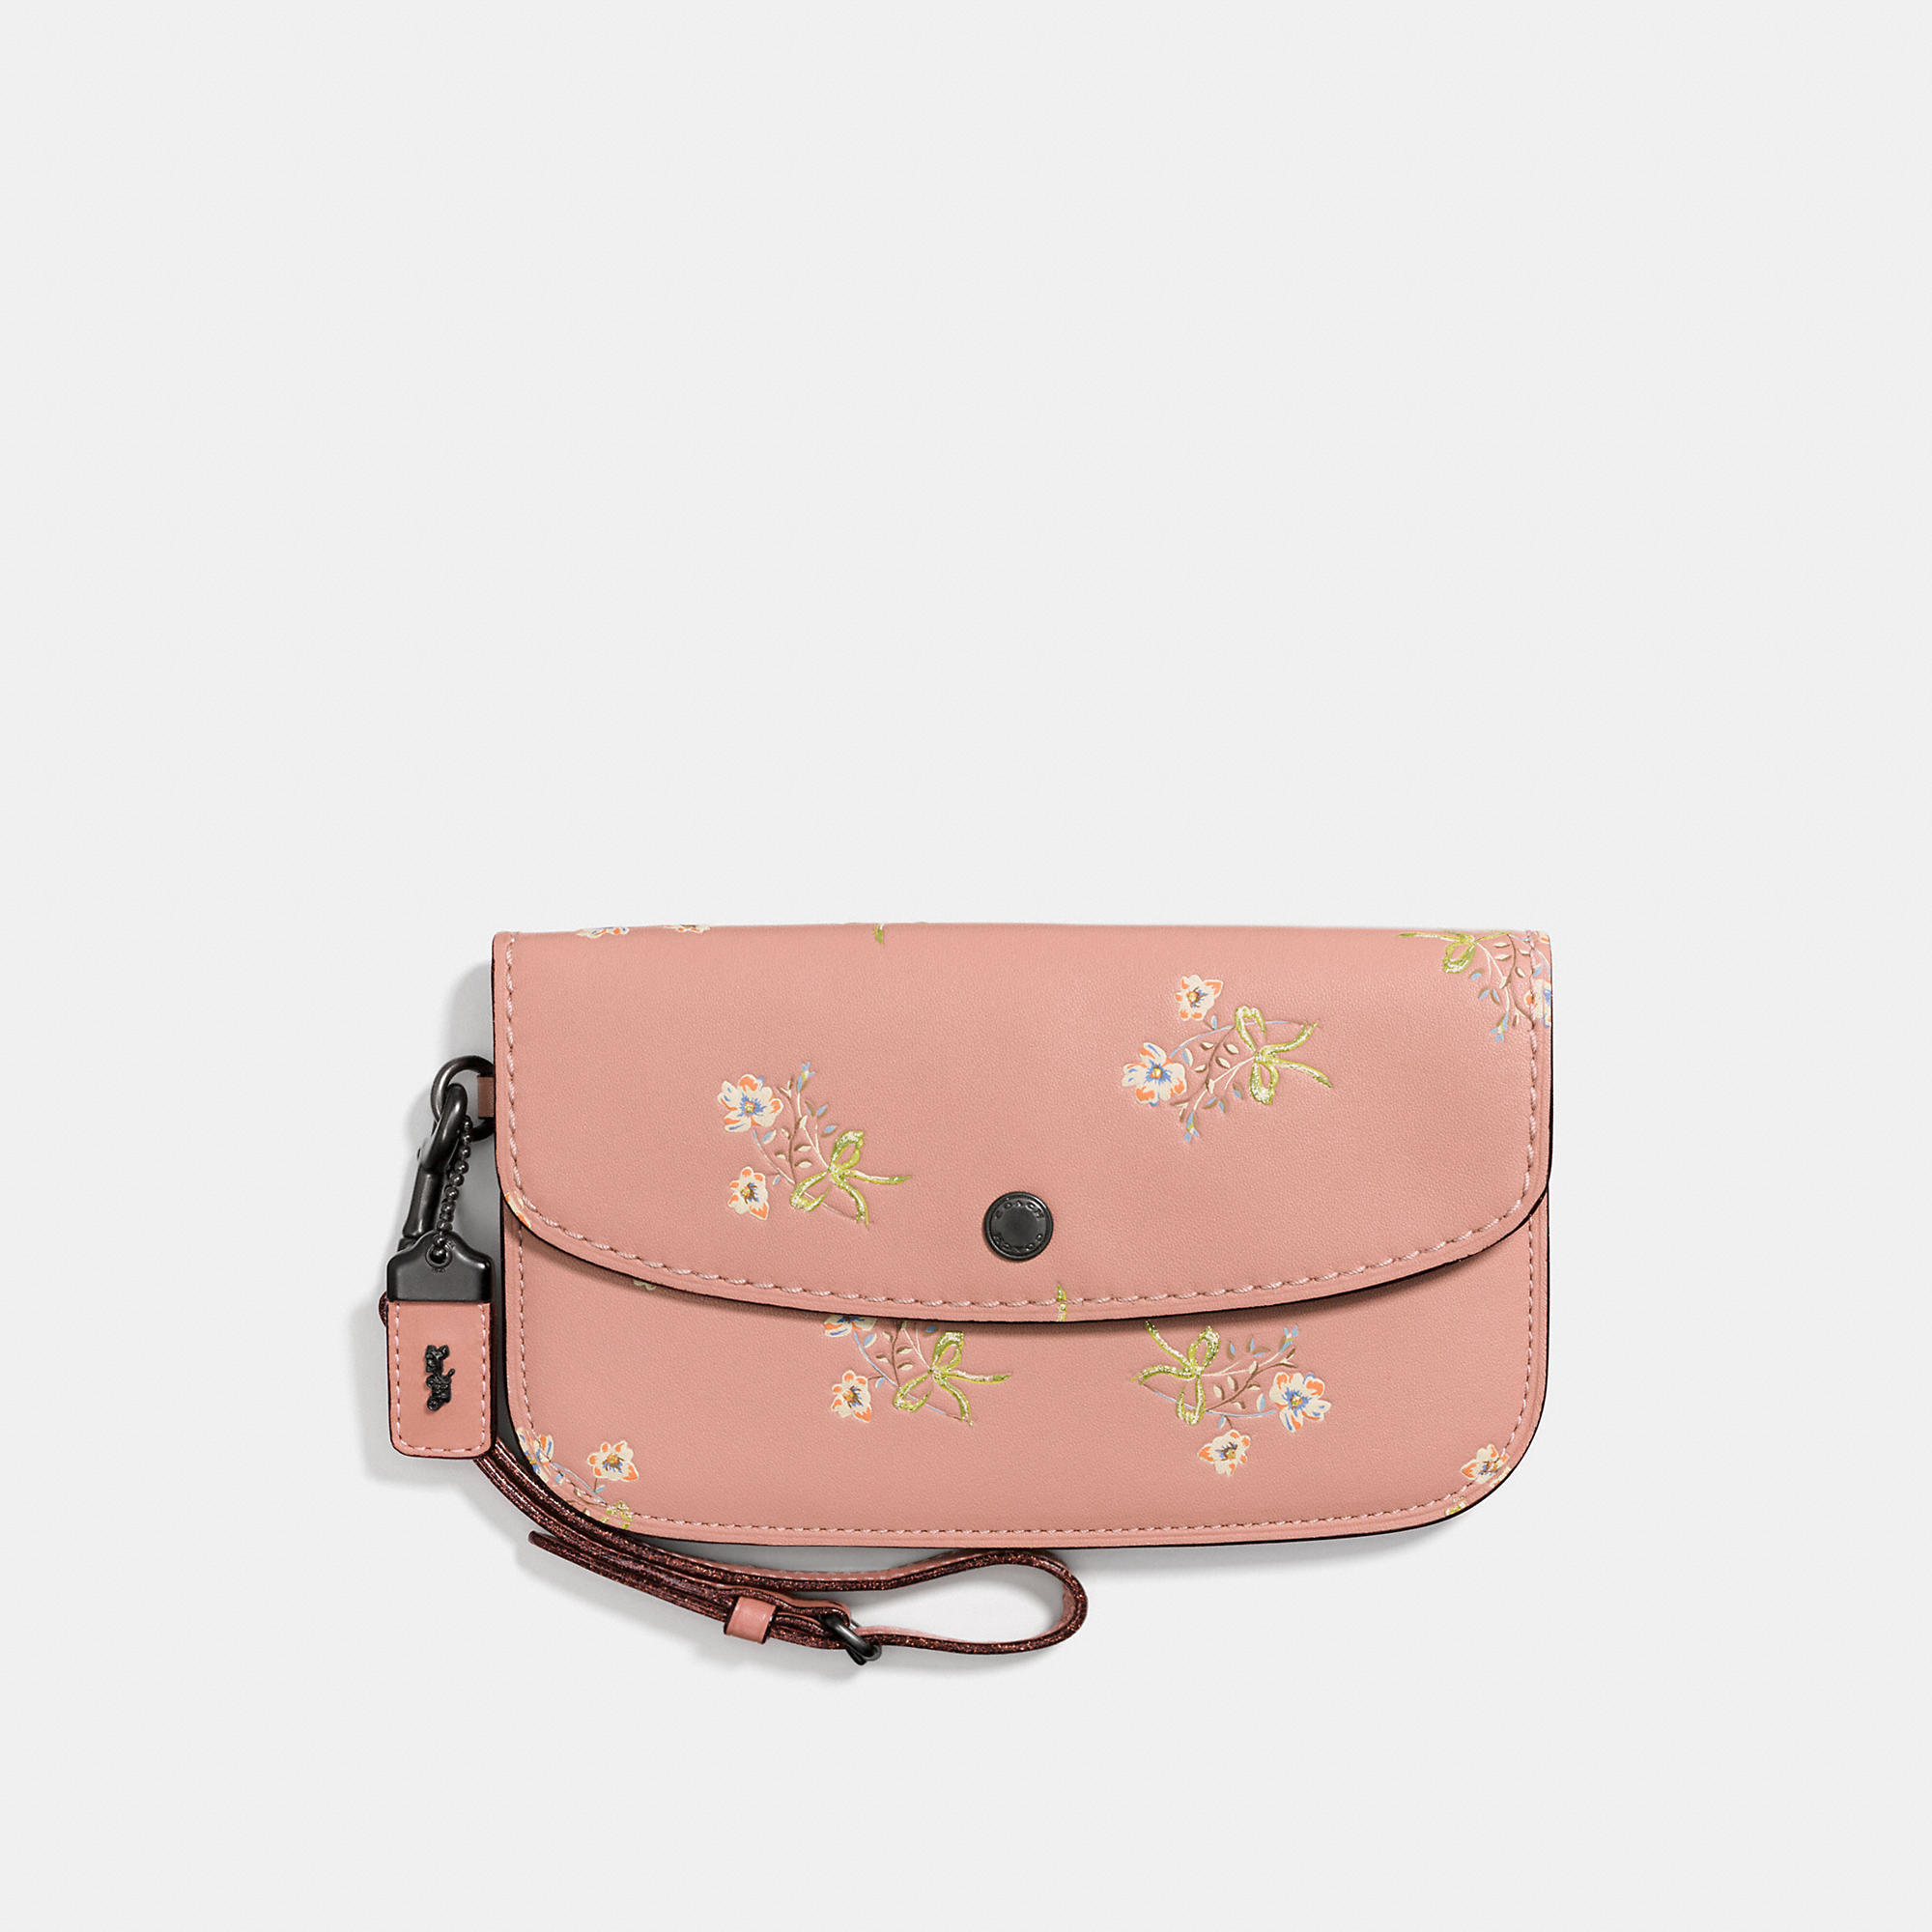 Coach Clutch In Glovetanned Leather With Floral Bow